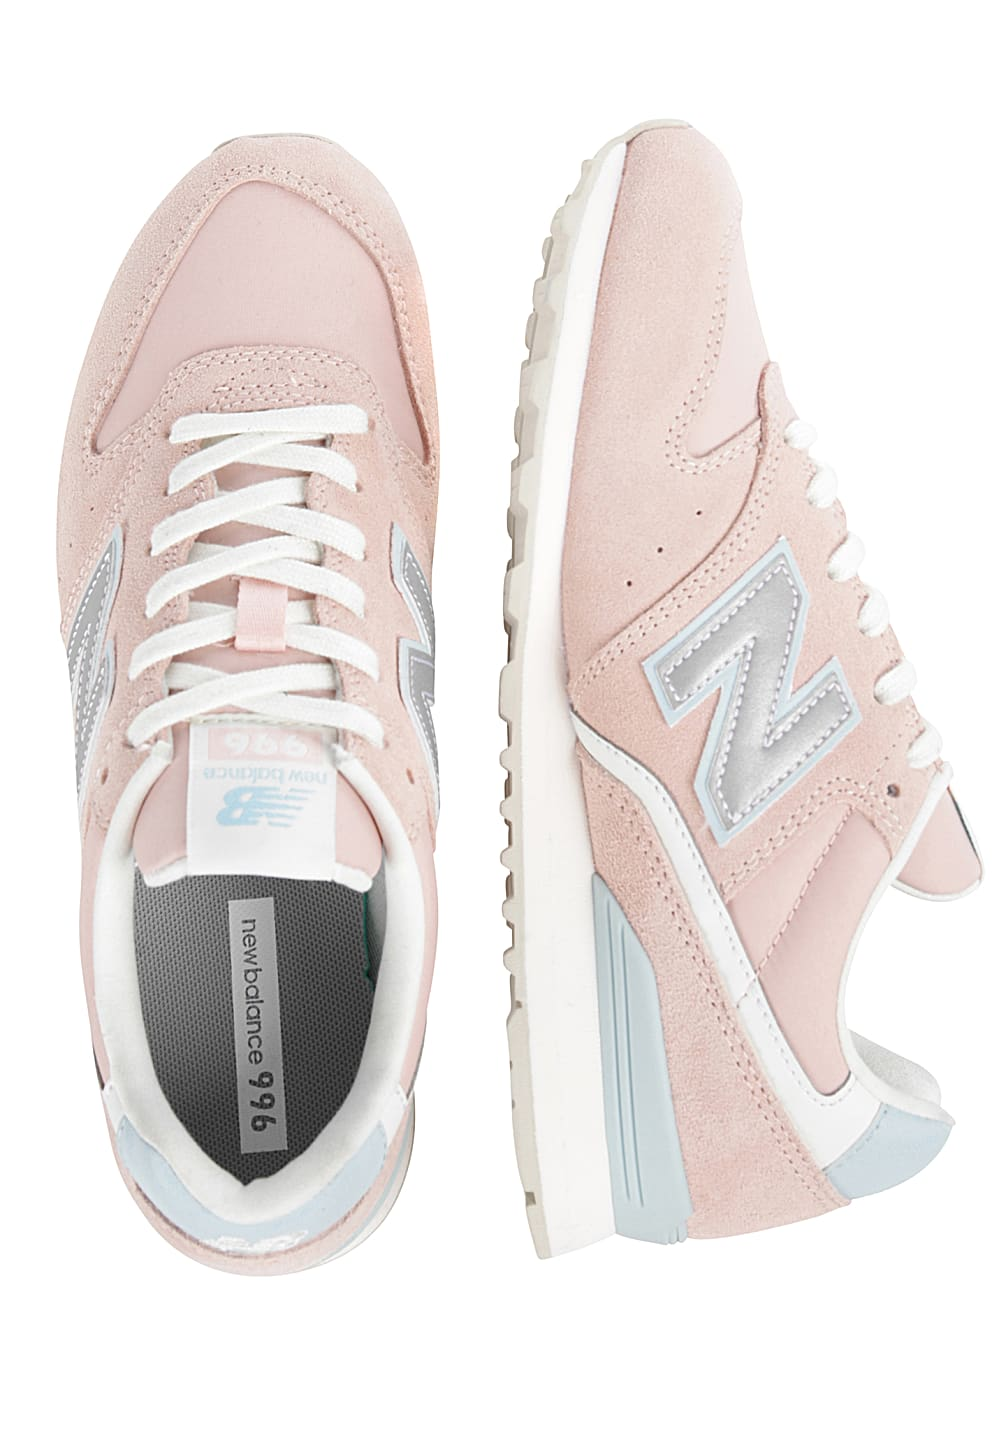 timeless design 5258f 08836 NEW BALANCE WL996 - Sneakers for Women - Pink